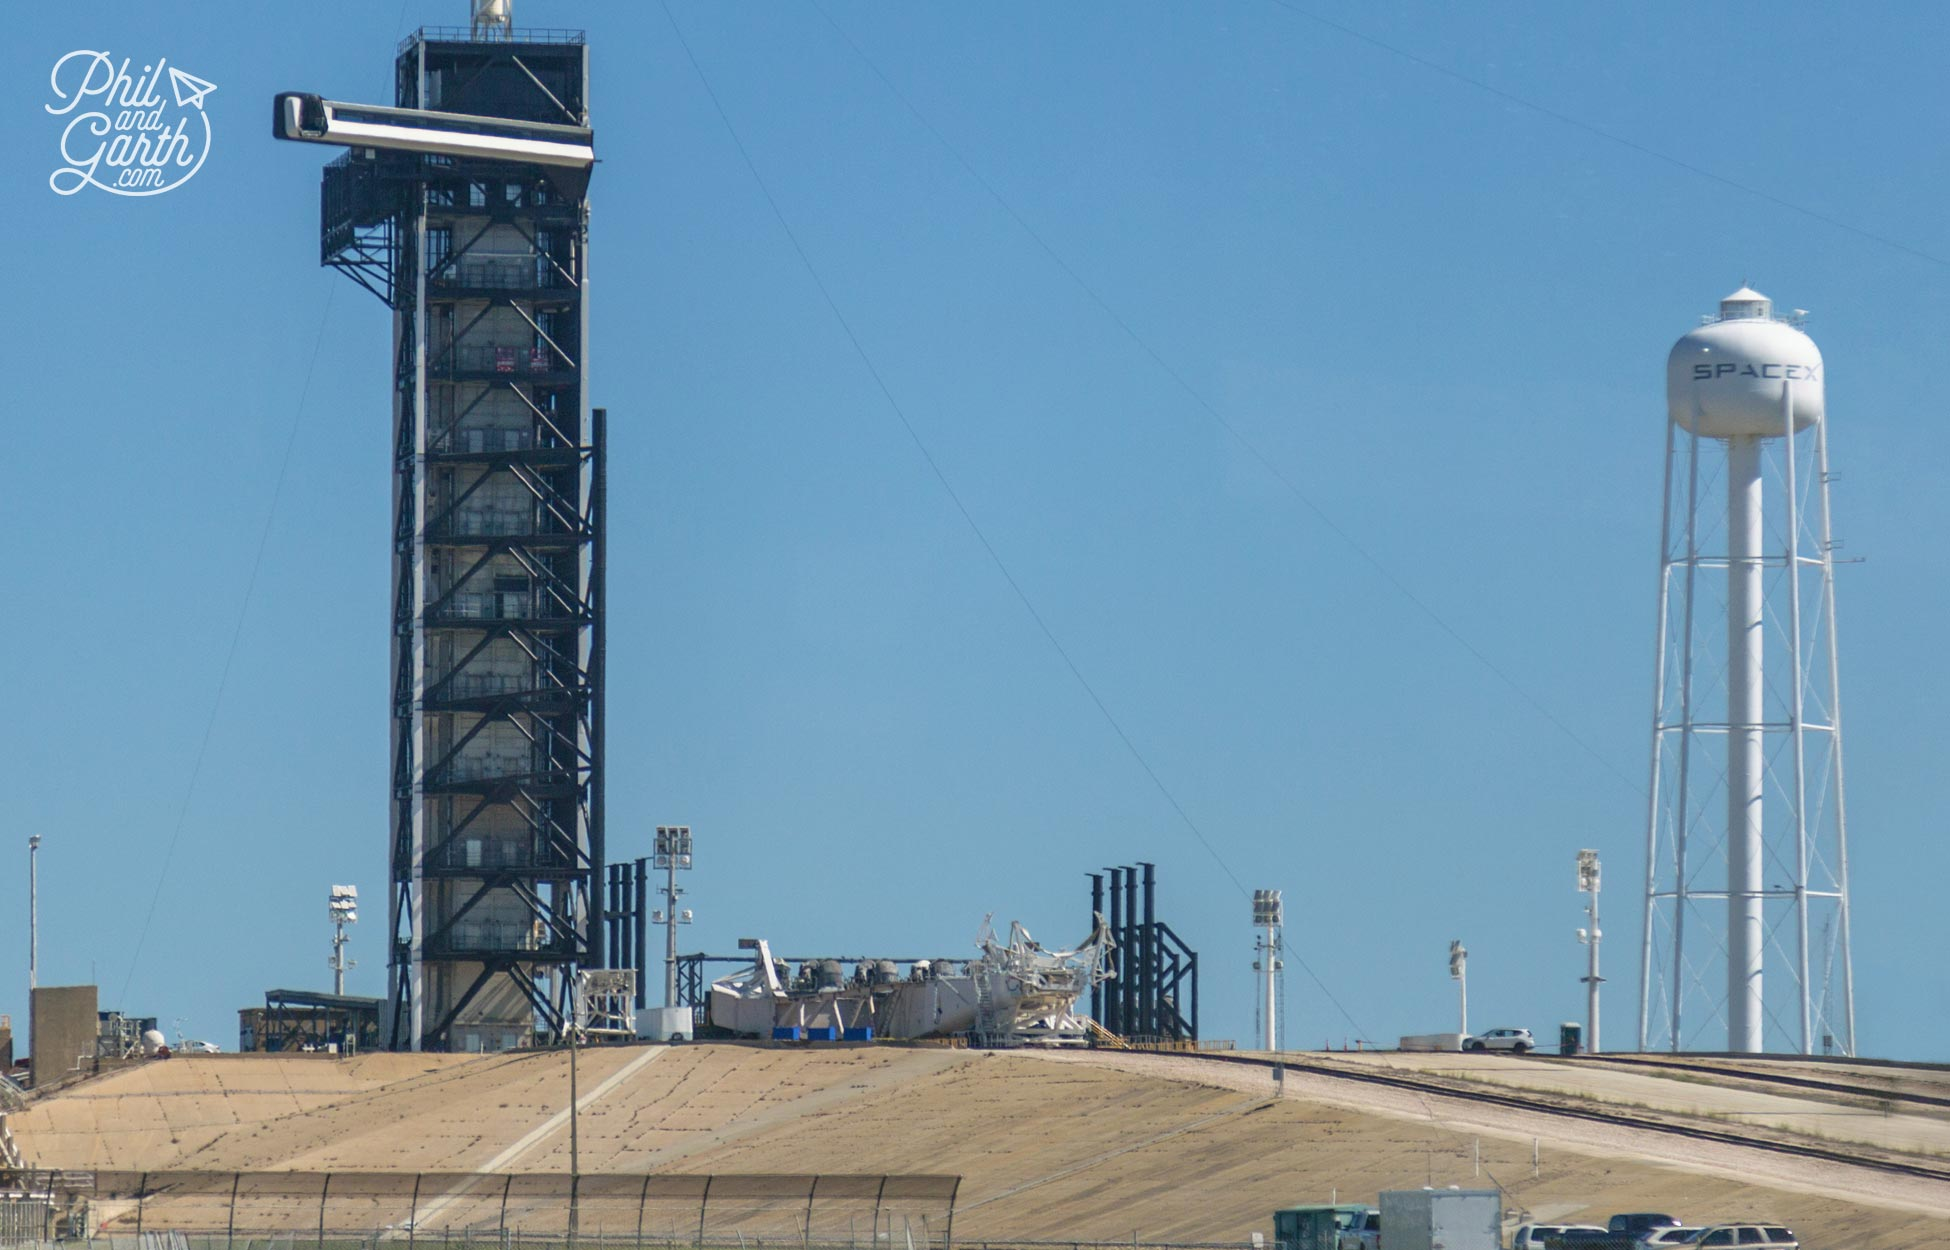 Launch pad 39A is currently leased by SpaceX